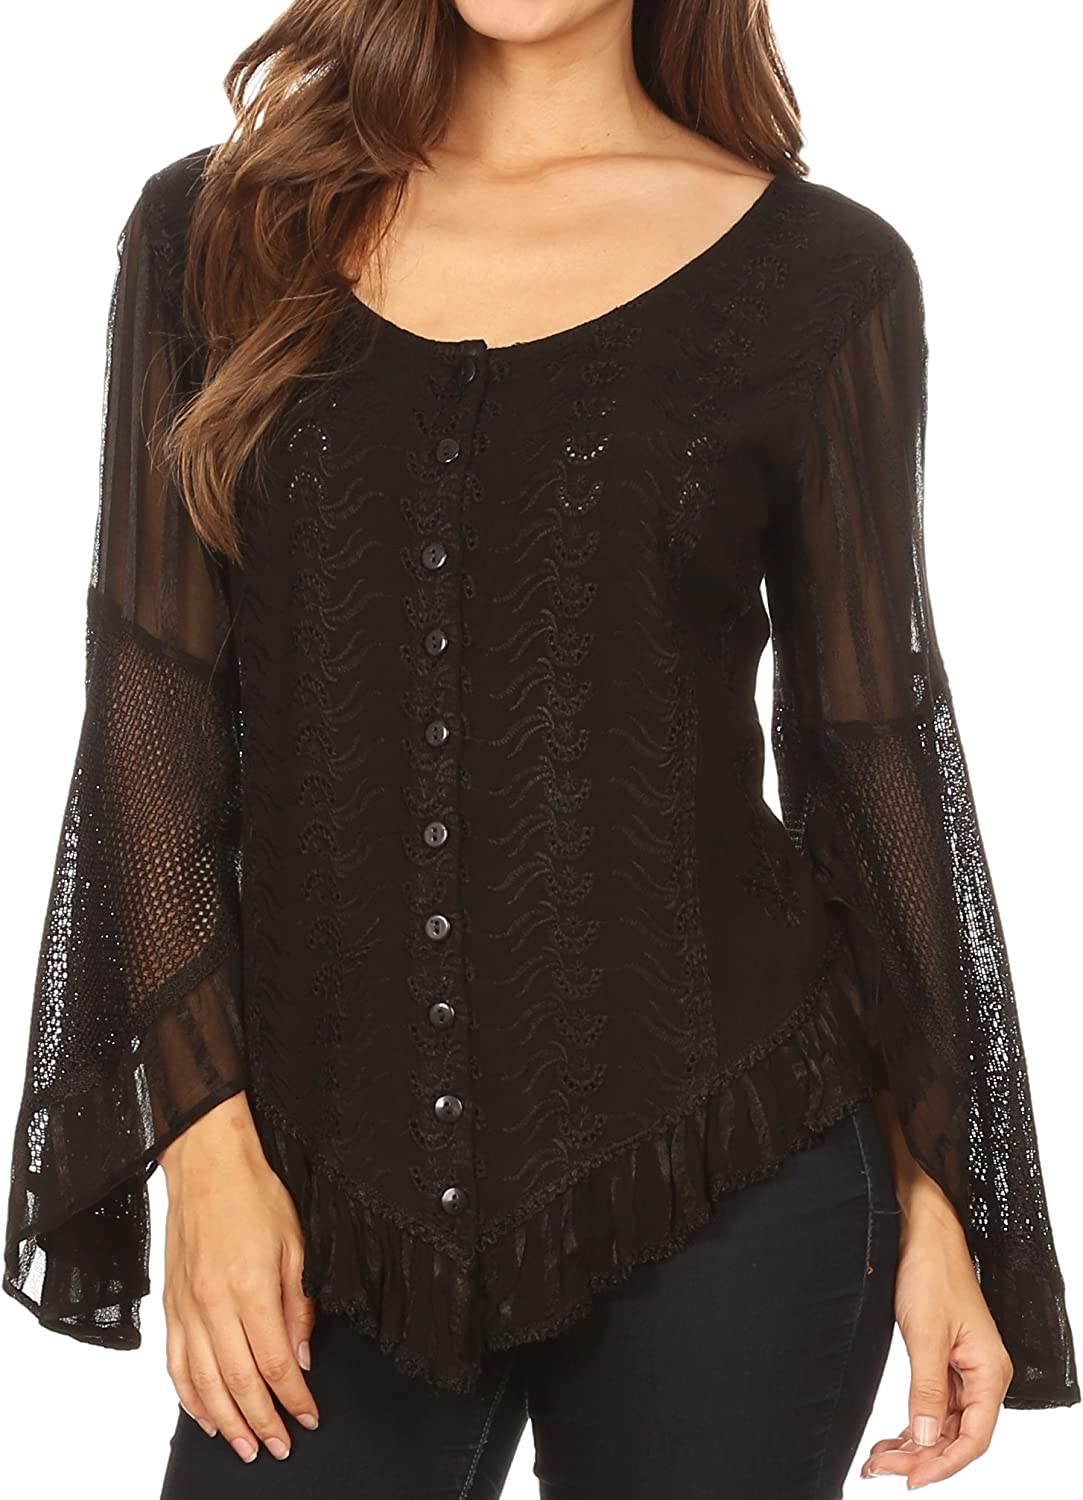 Sakkas Marga Womens Button Down Long Sleeve Top Blouse Shirt Lace Solid Simple